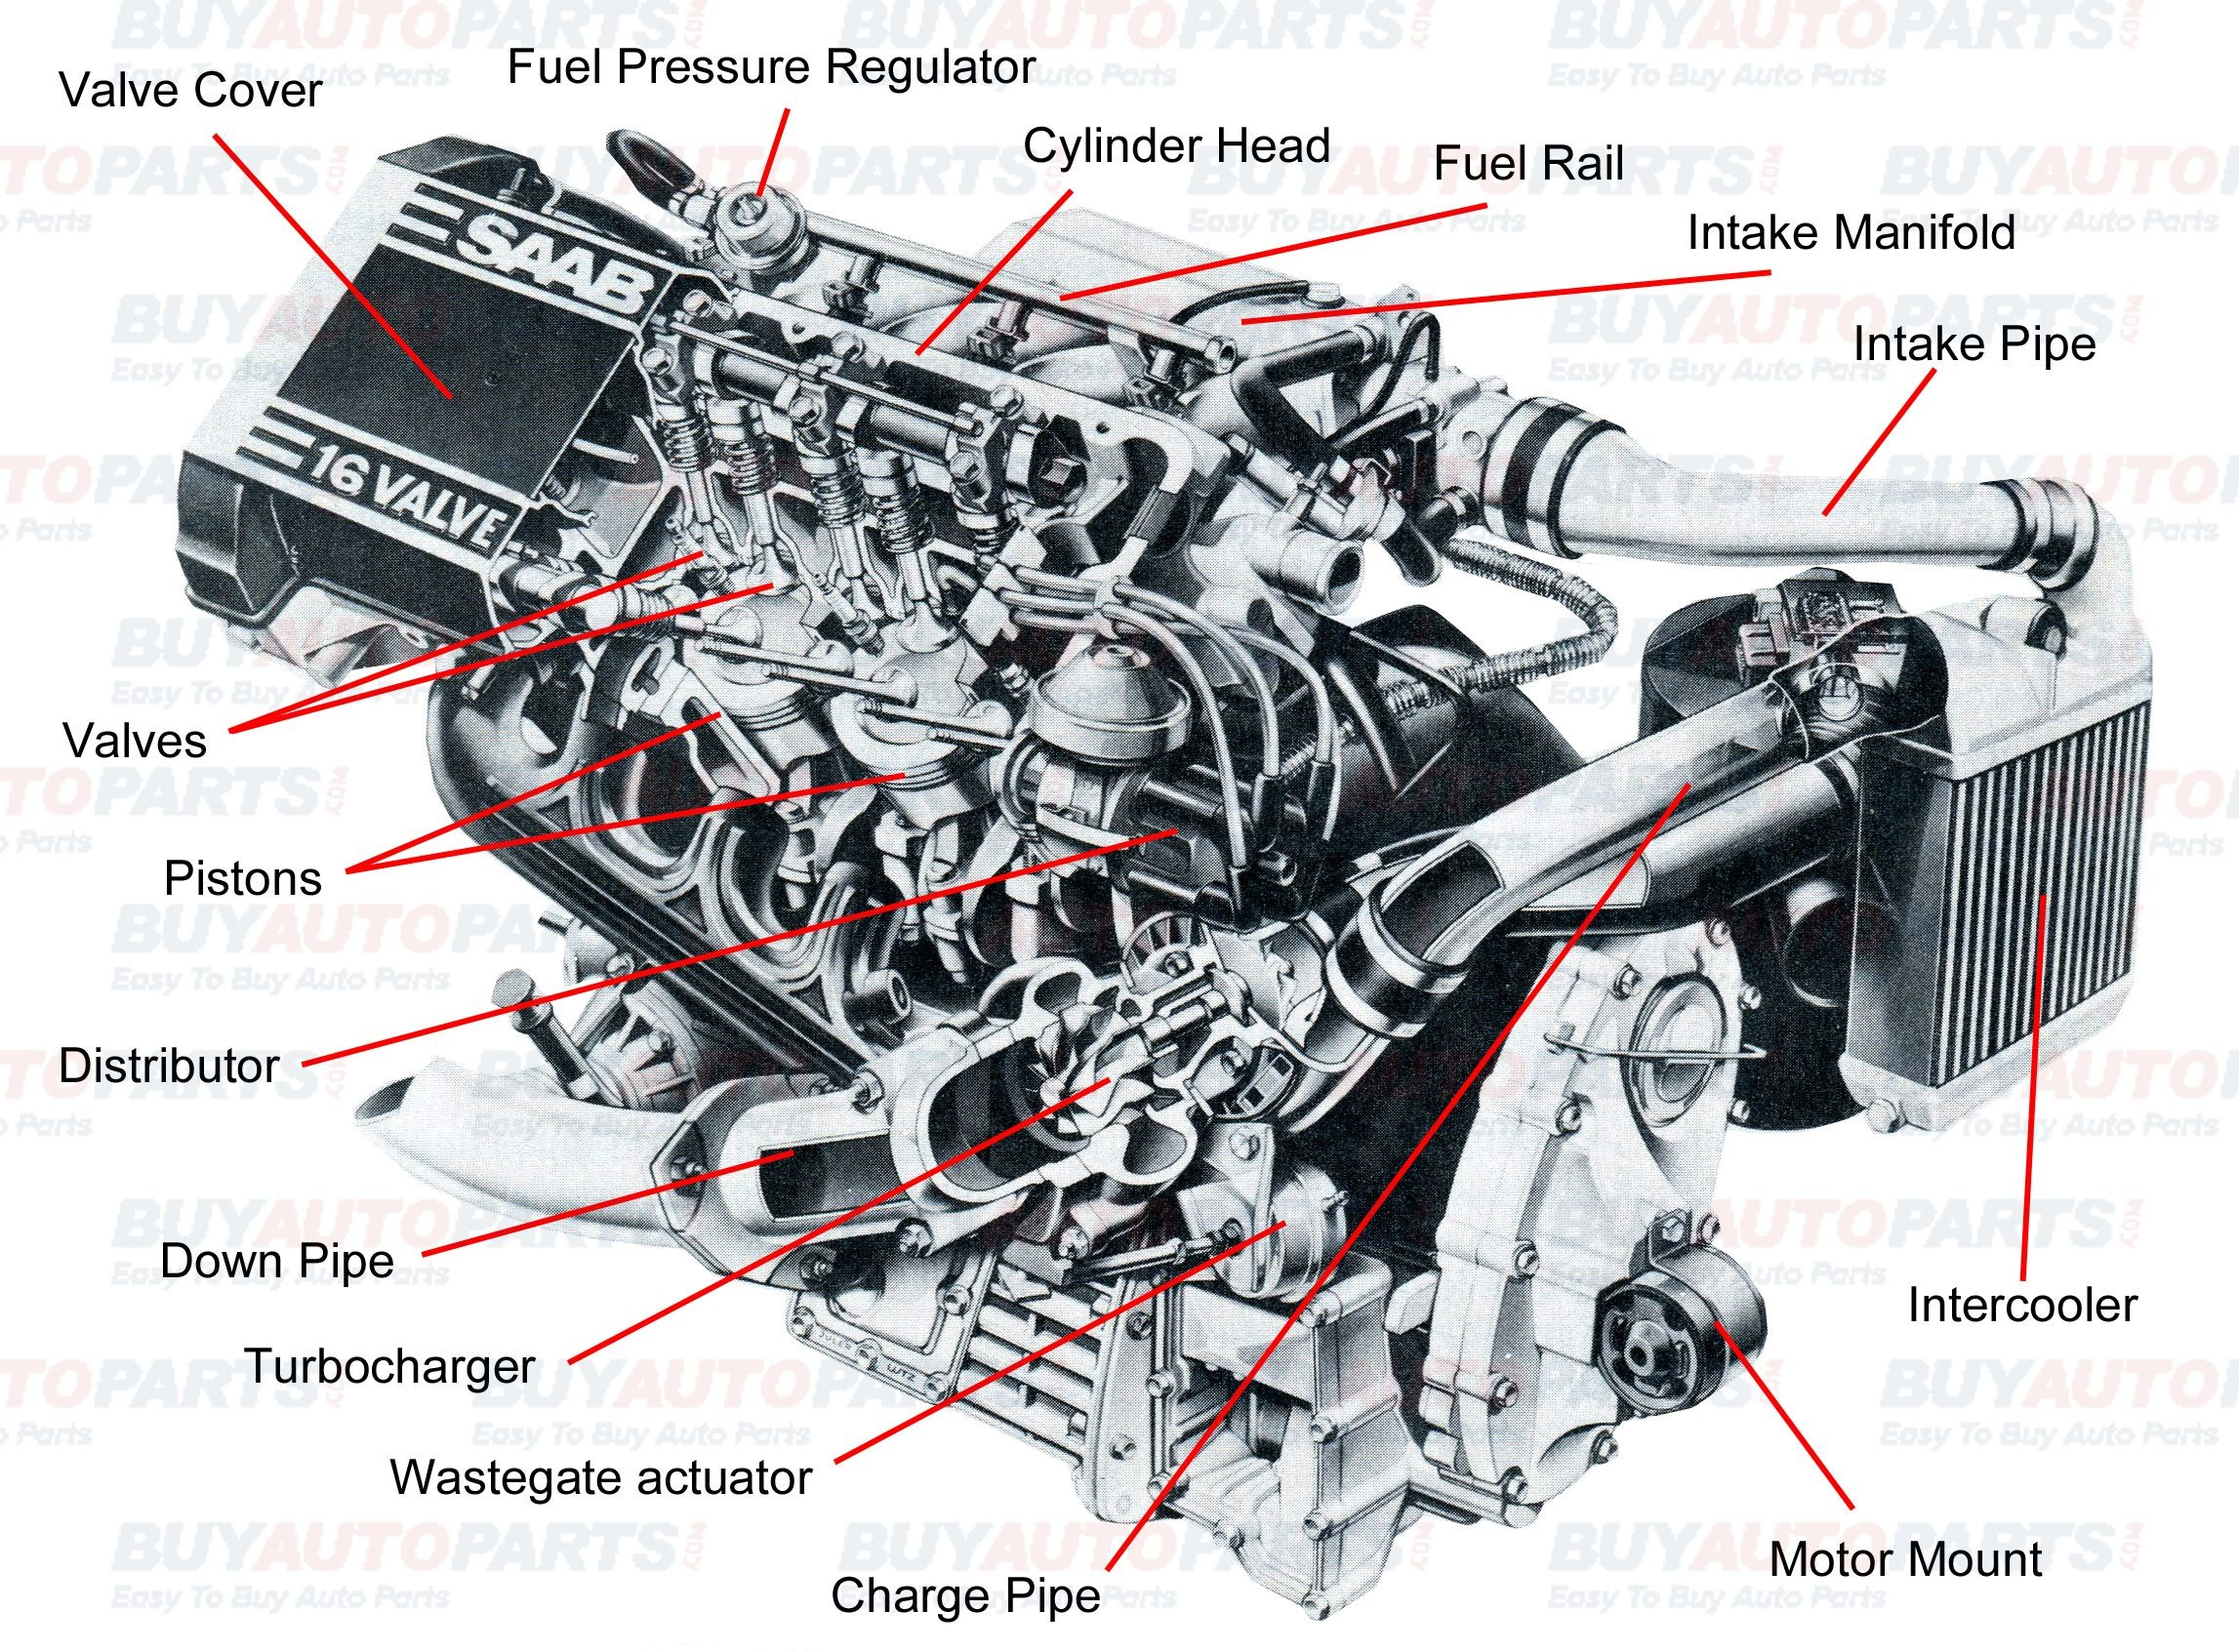 Full Car Engine Diagram All Internal Bustion Engines Have the Same Basic Ponents the Of Full Car Engine Diagram